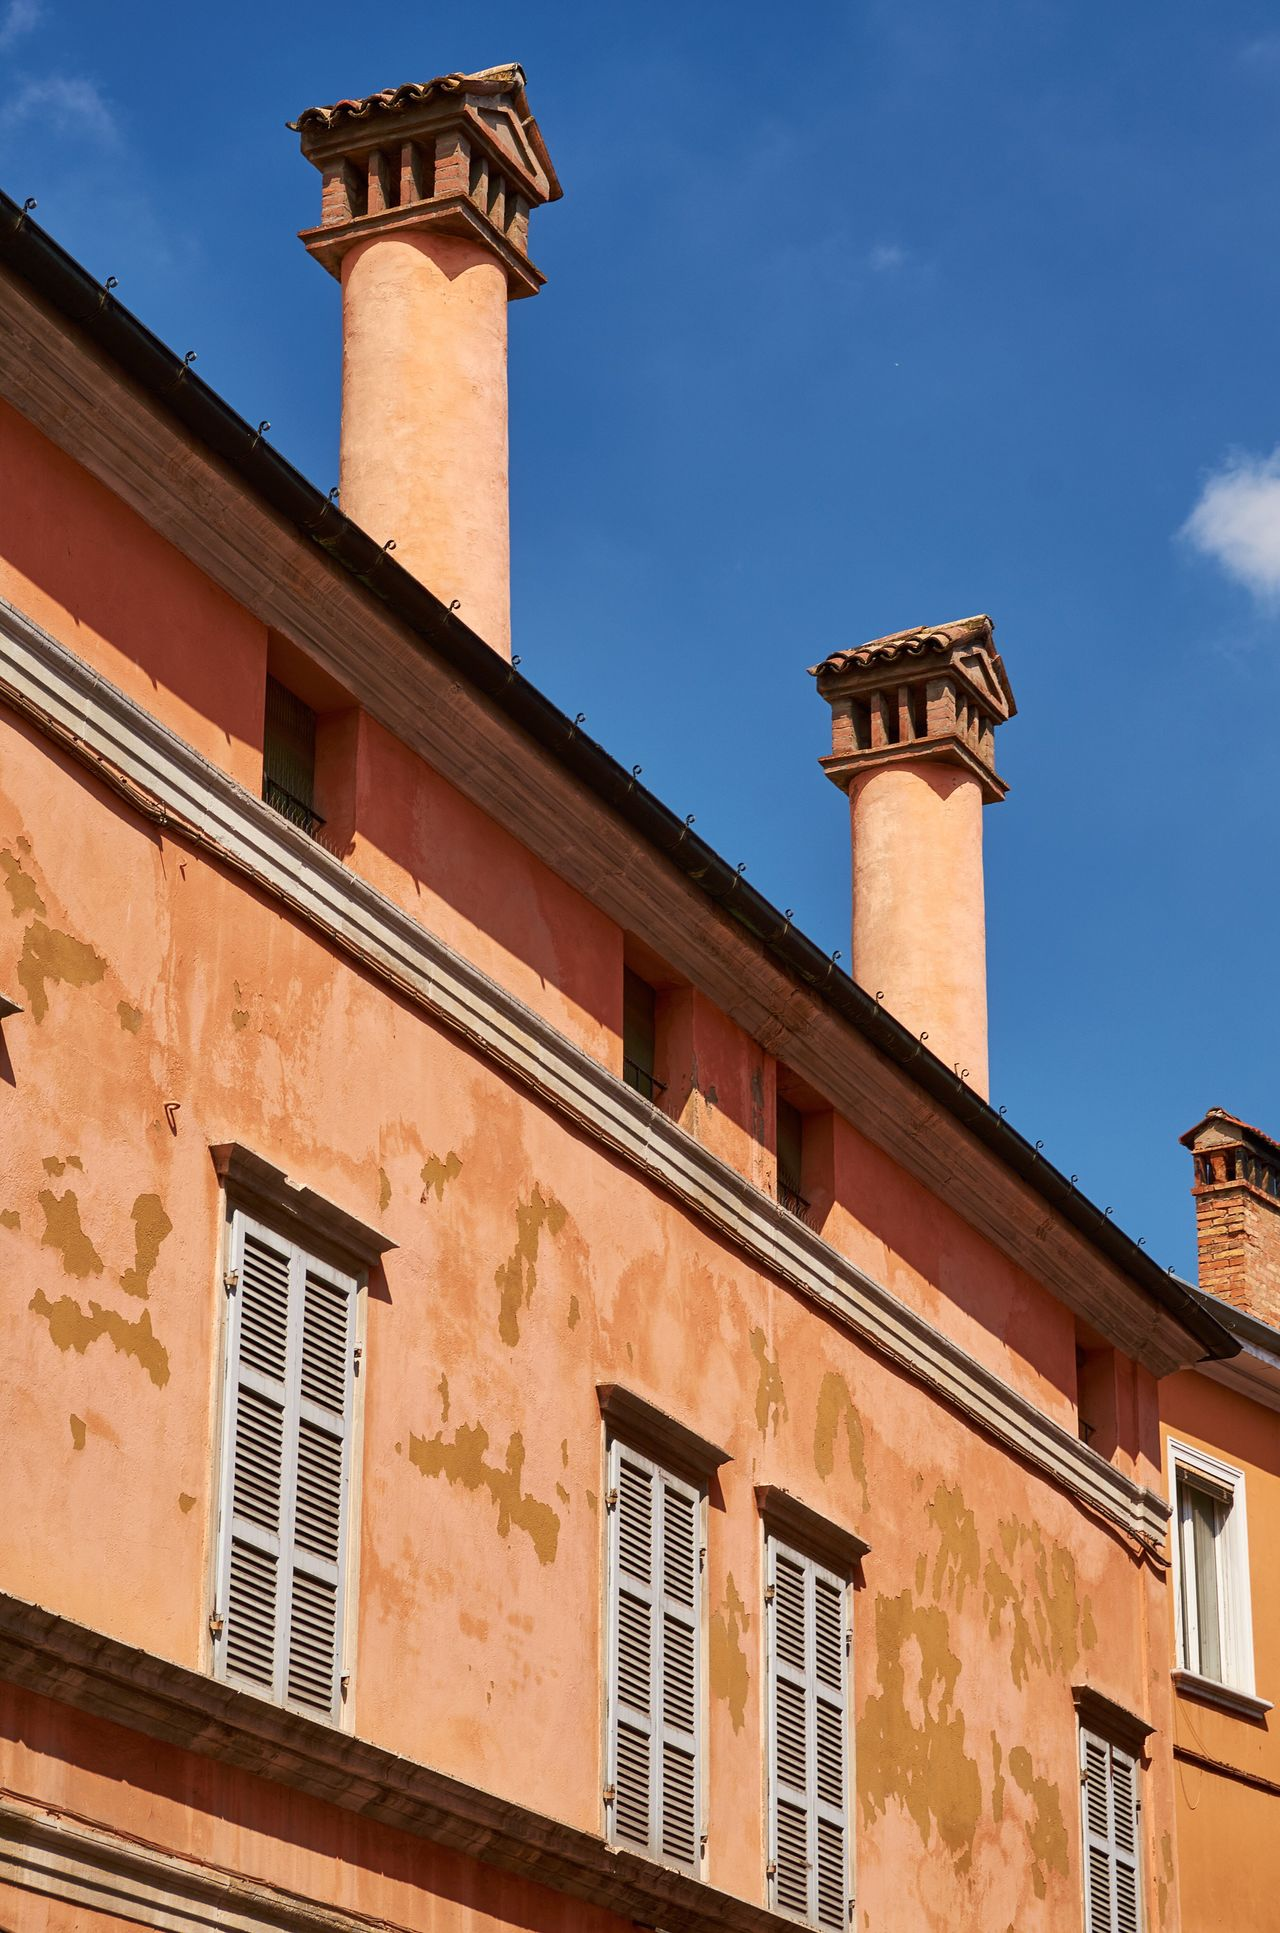 Ravenna Ravenna Italy Façade Building Building Exterior Historic Historical Building Architecture Urban City Blue Sky Textures And Surfaces Windows Chimney No People Built Structure Low Angle View Outdoors Day Vivid Colorful Decay Shutters Weathered